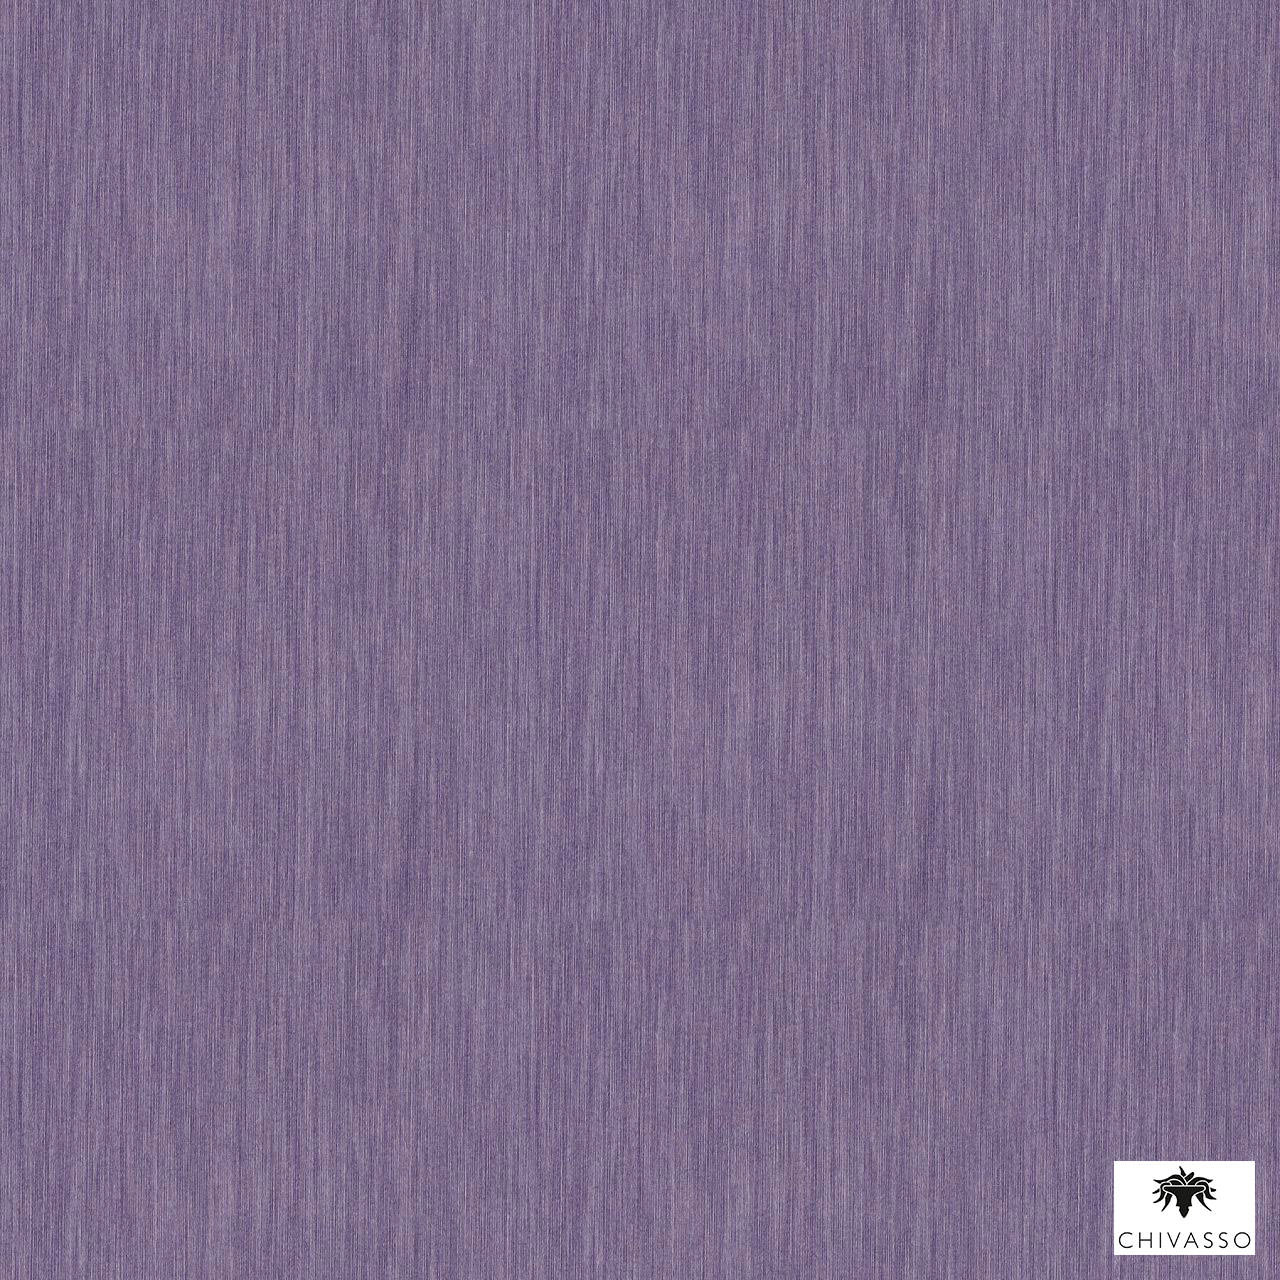 Chivasso - Colour Block - Ch9112-089  | Wallpaper, Wallcovering - Plain, Pink, Purple, Domestic Use